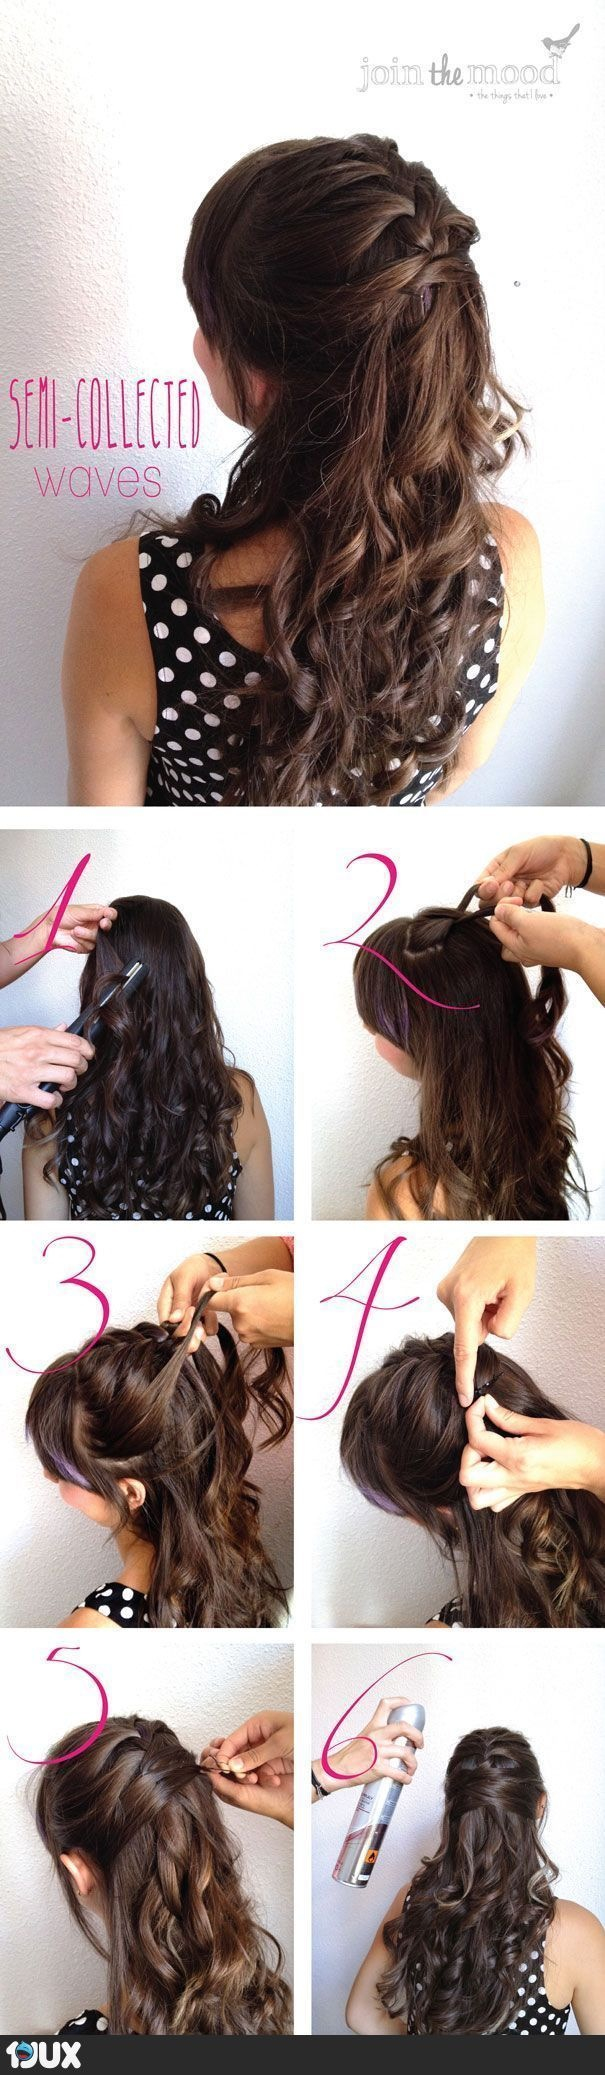 Very easy hairstyle pentinats pinterest easy hairstyles hair